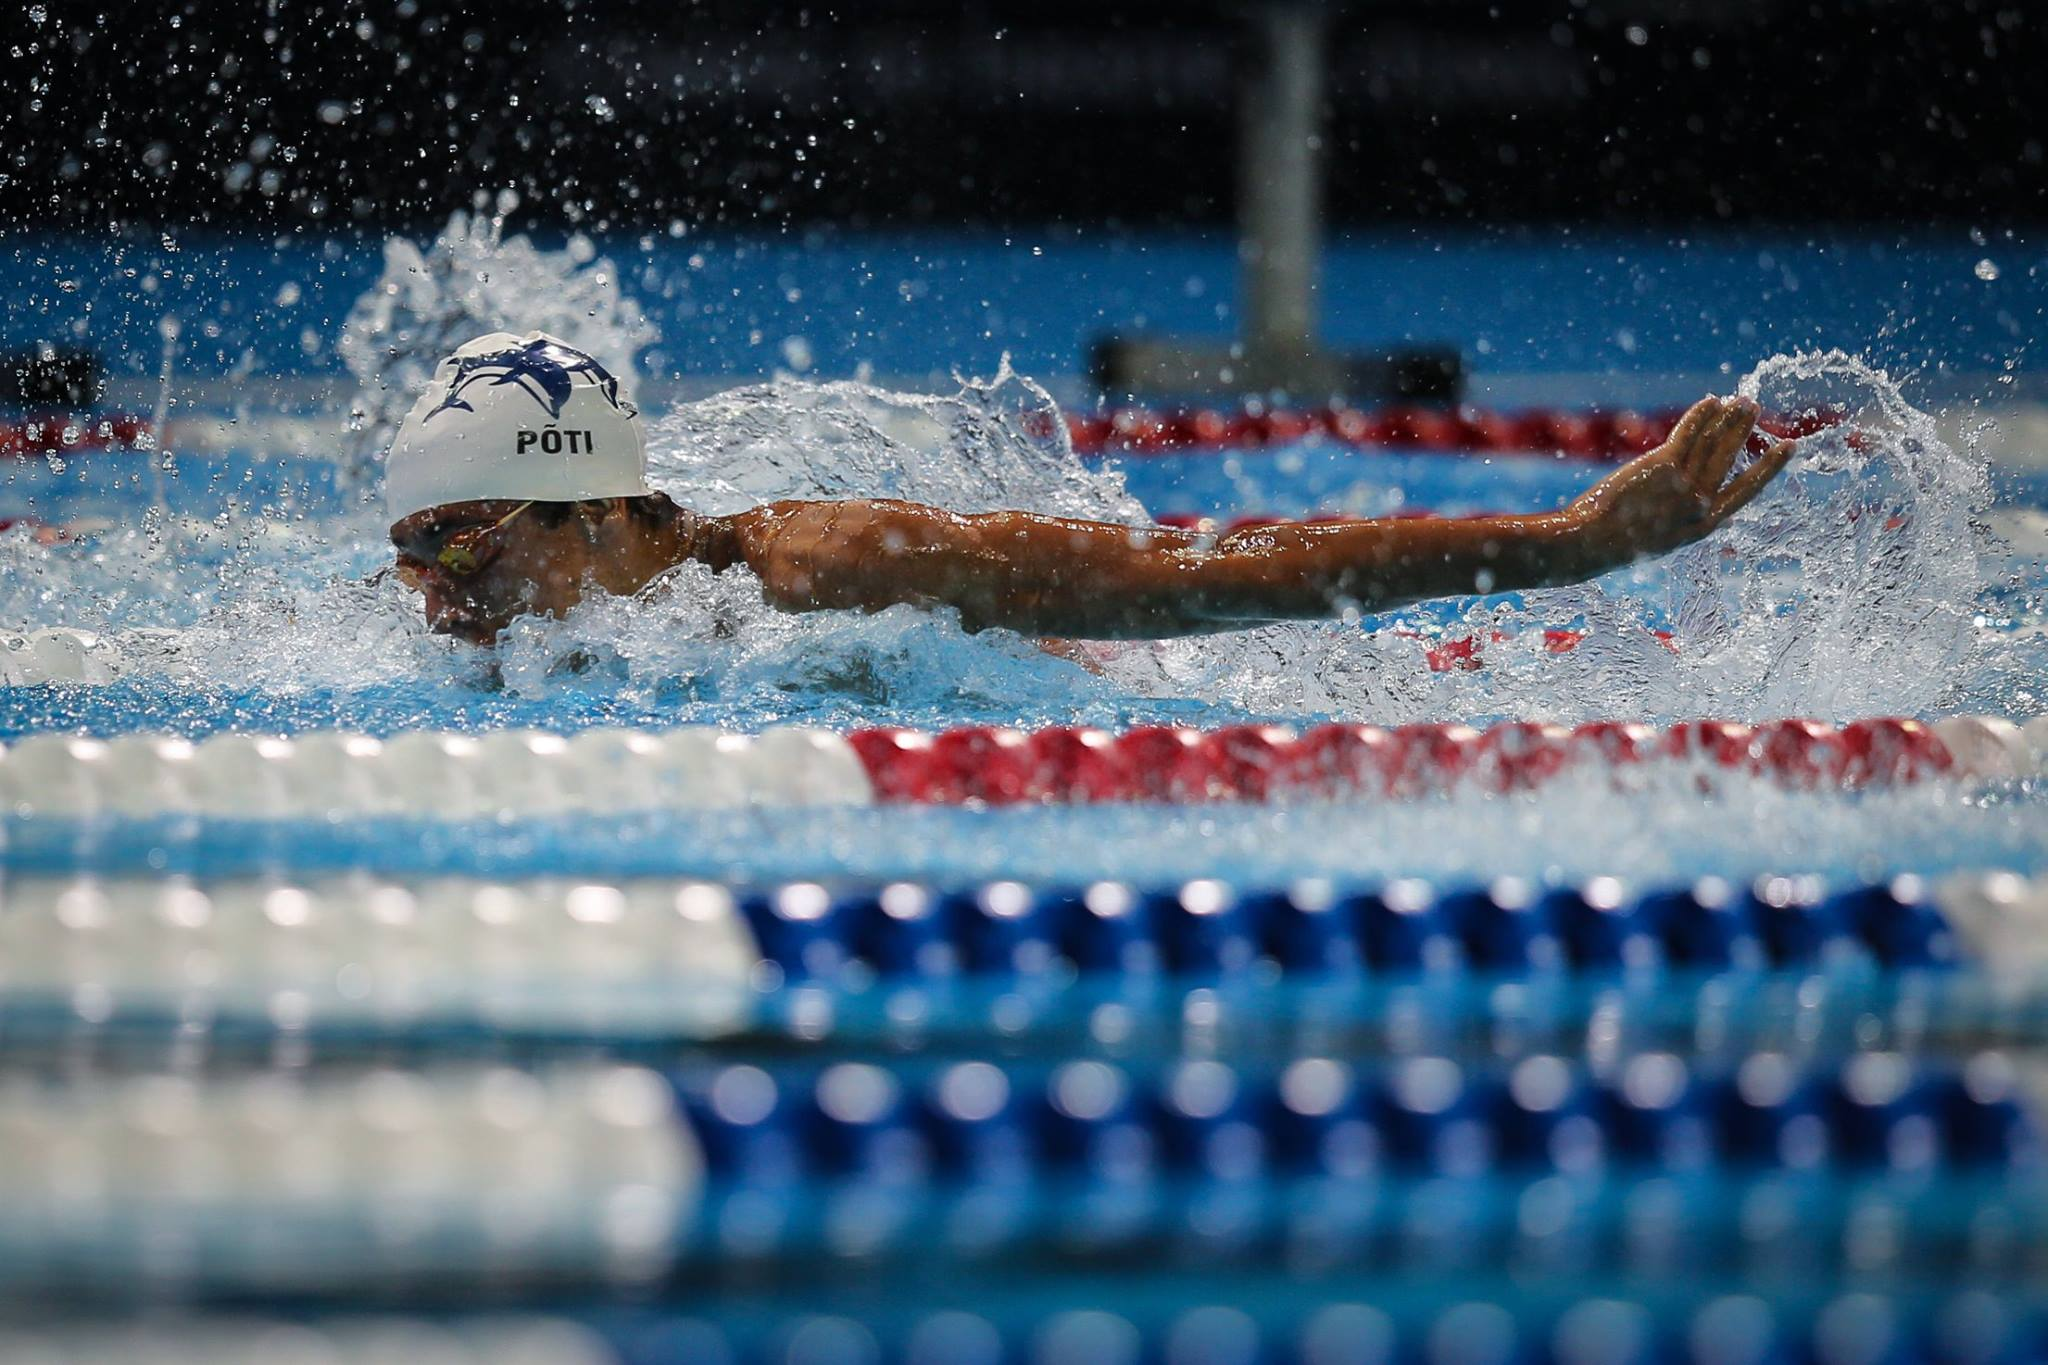 Then Oviedo High School swimmer Zach Poti (Blue Dolfins) swimming at the 2016 U.S. Olympic Trials in Omaha. Photo by Michael C. Lyn for Florida Swim Network.